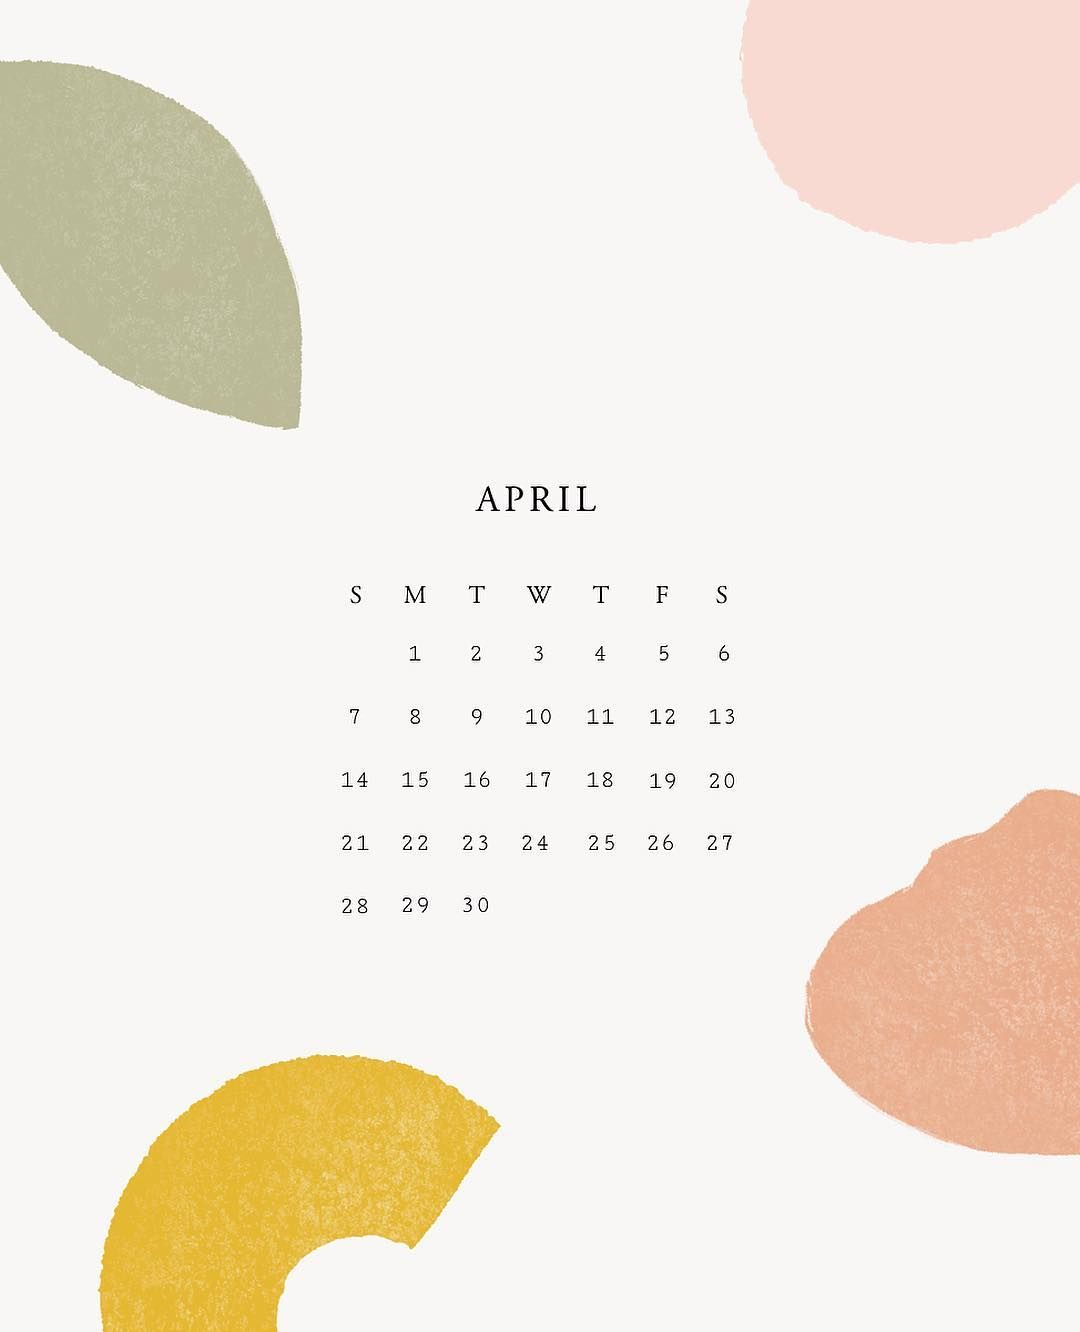 April Calendar Wallpapers By Minna So Graphic Design Calendar Calendar Design Calender Design